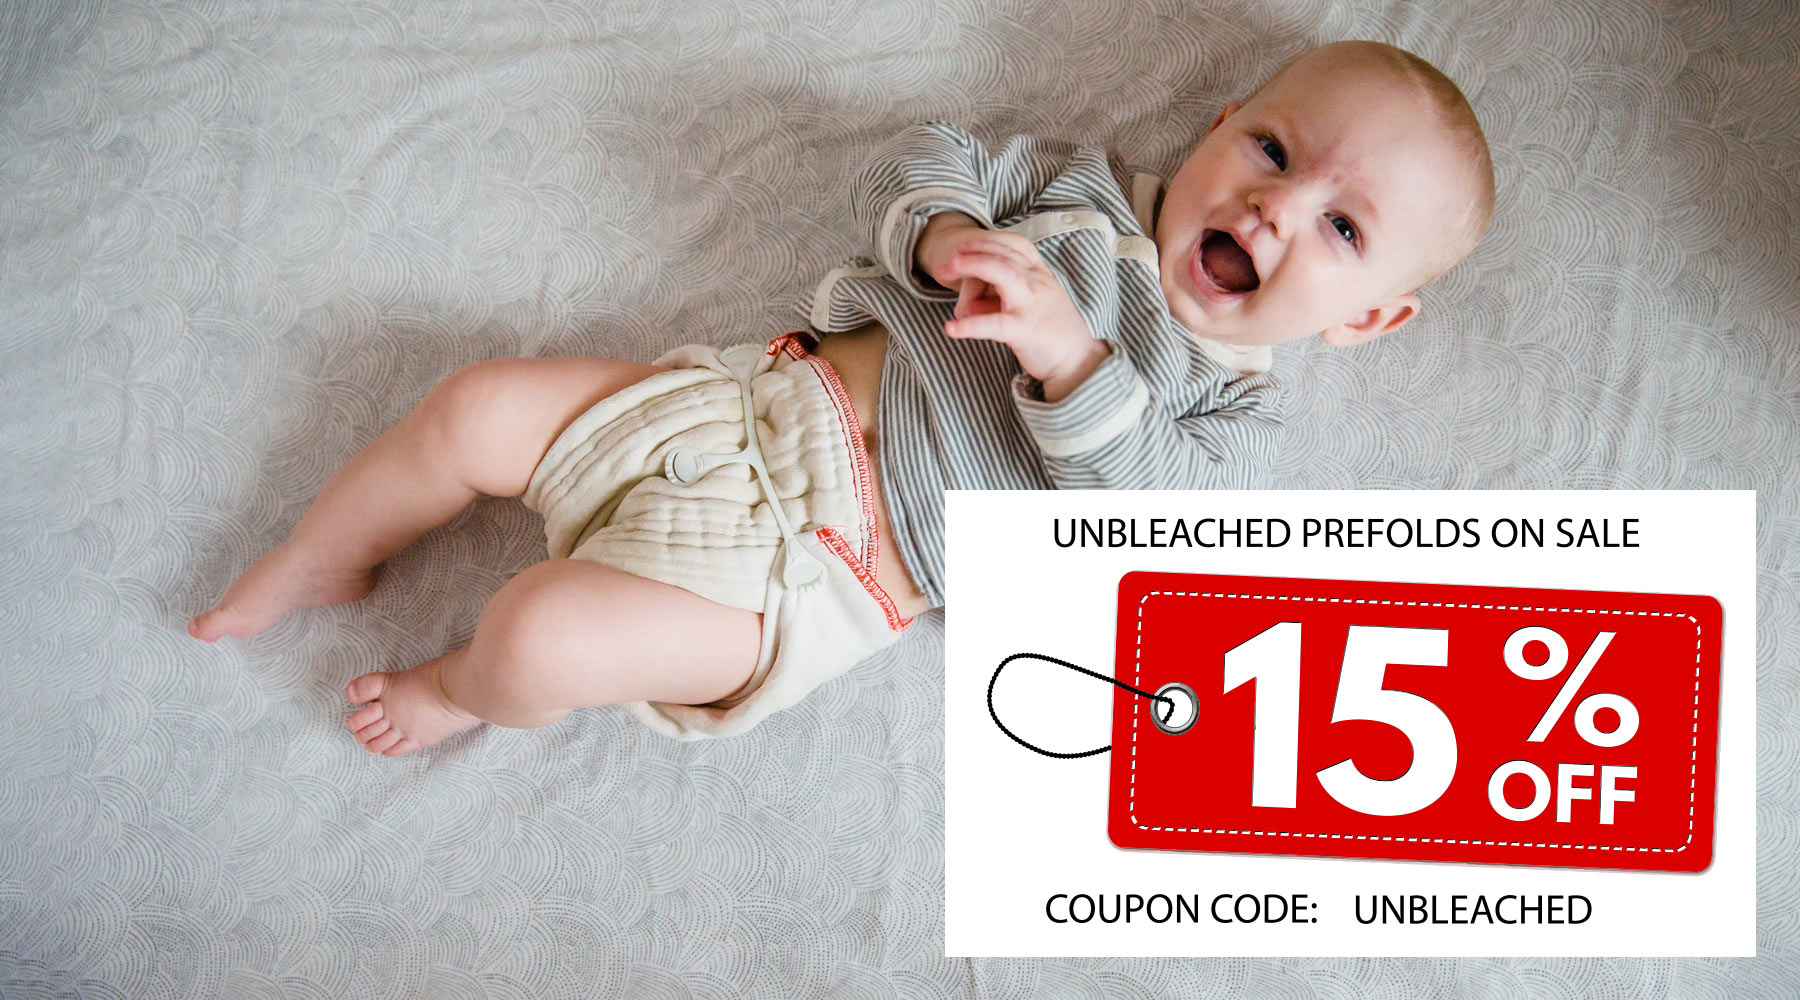 cloth diaper on baby unbleached prefolds on sale